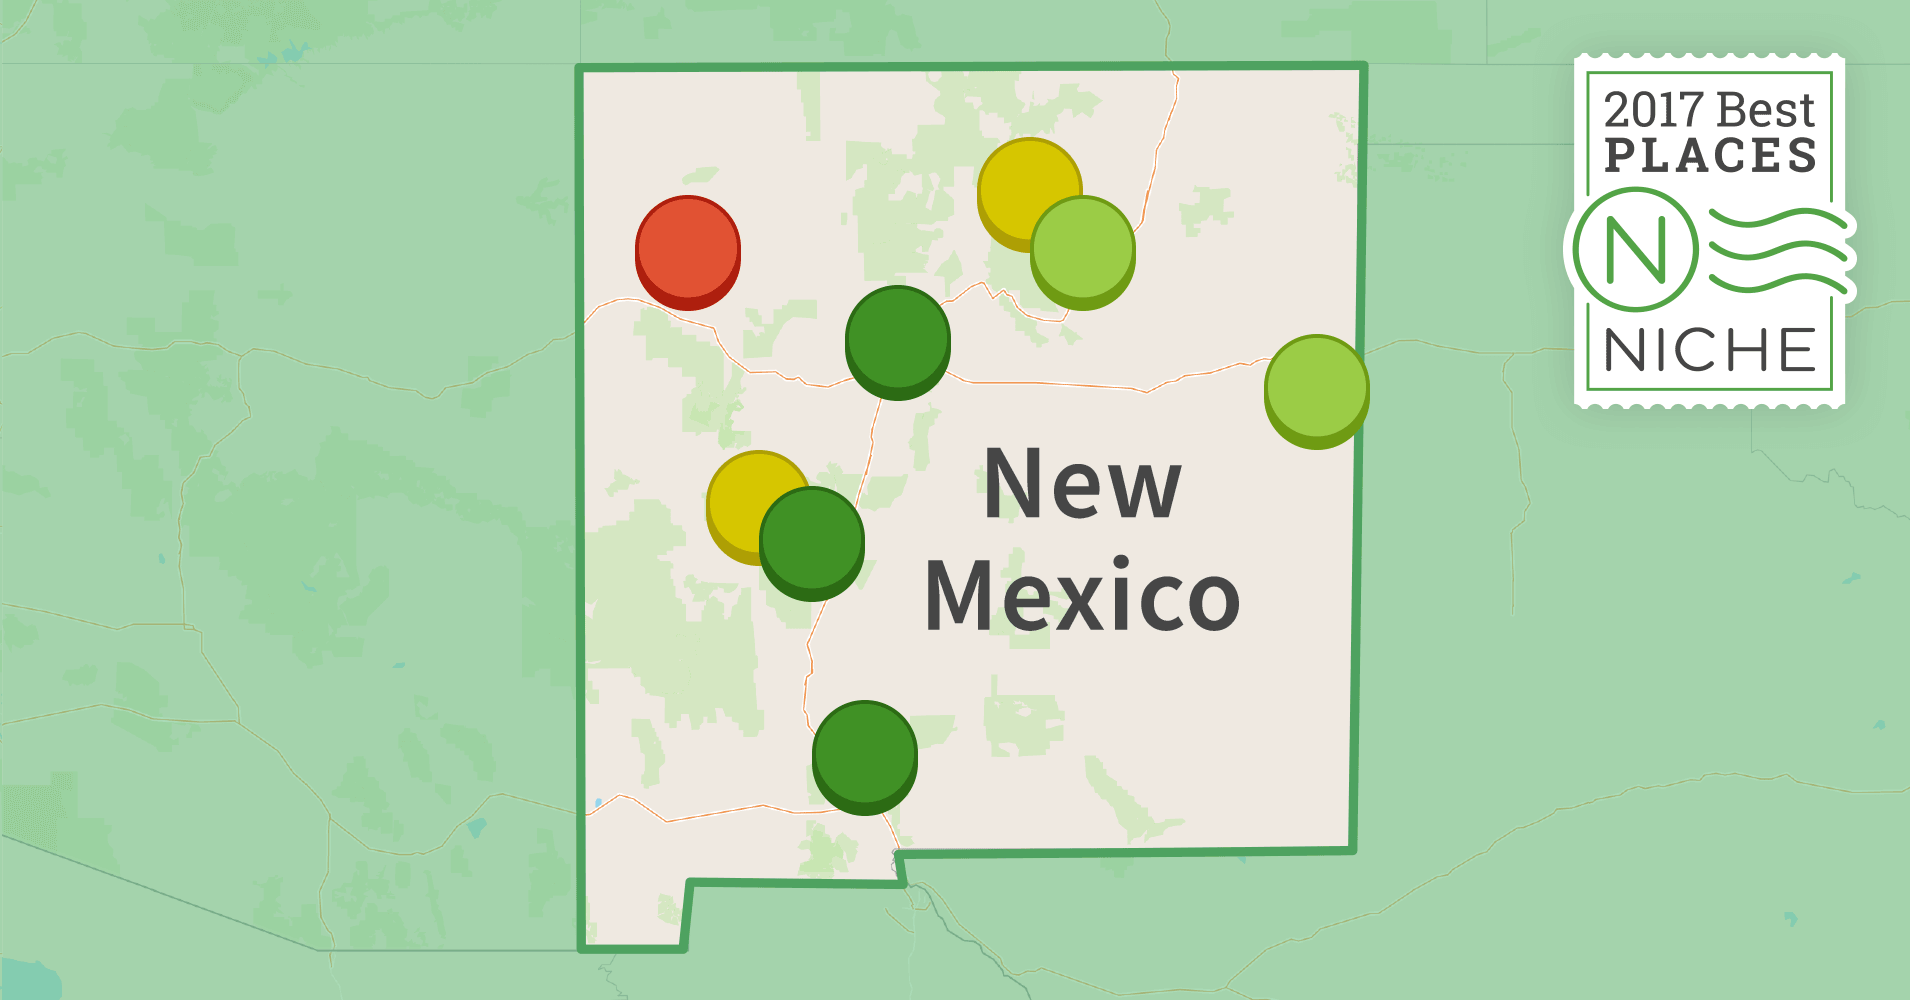 2017 best places to live in new mexico niche for Top us cities to live in 2017